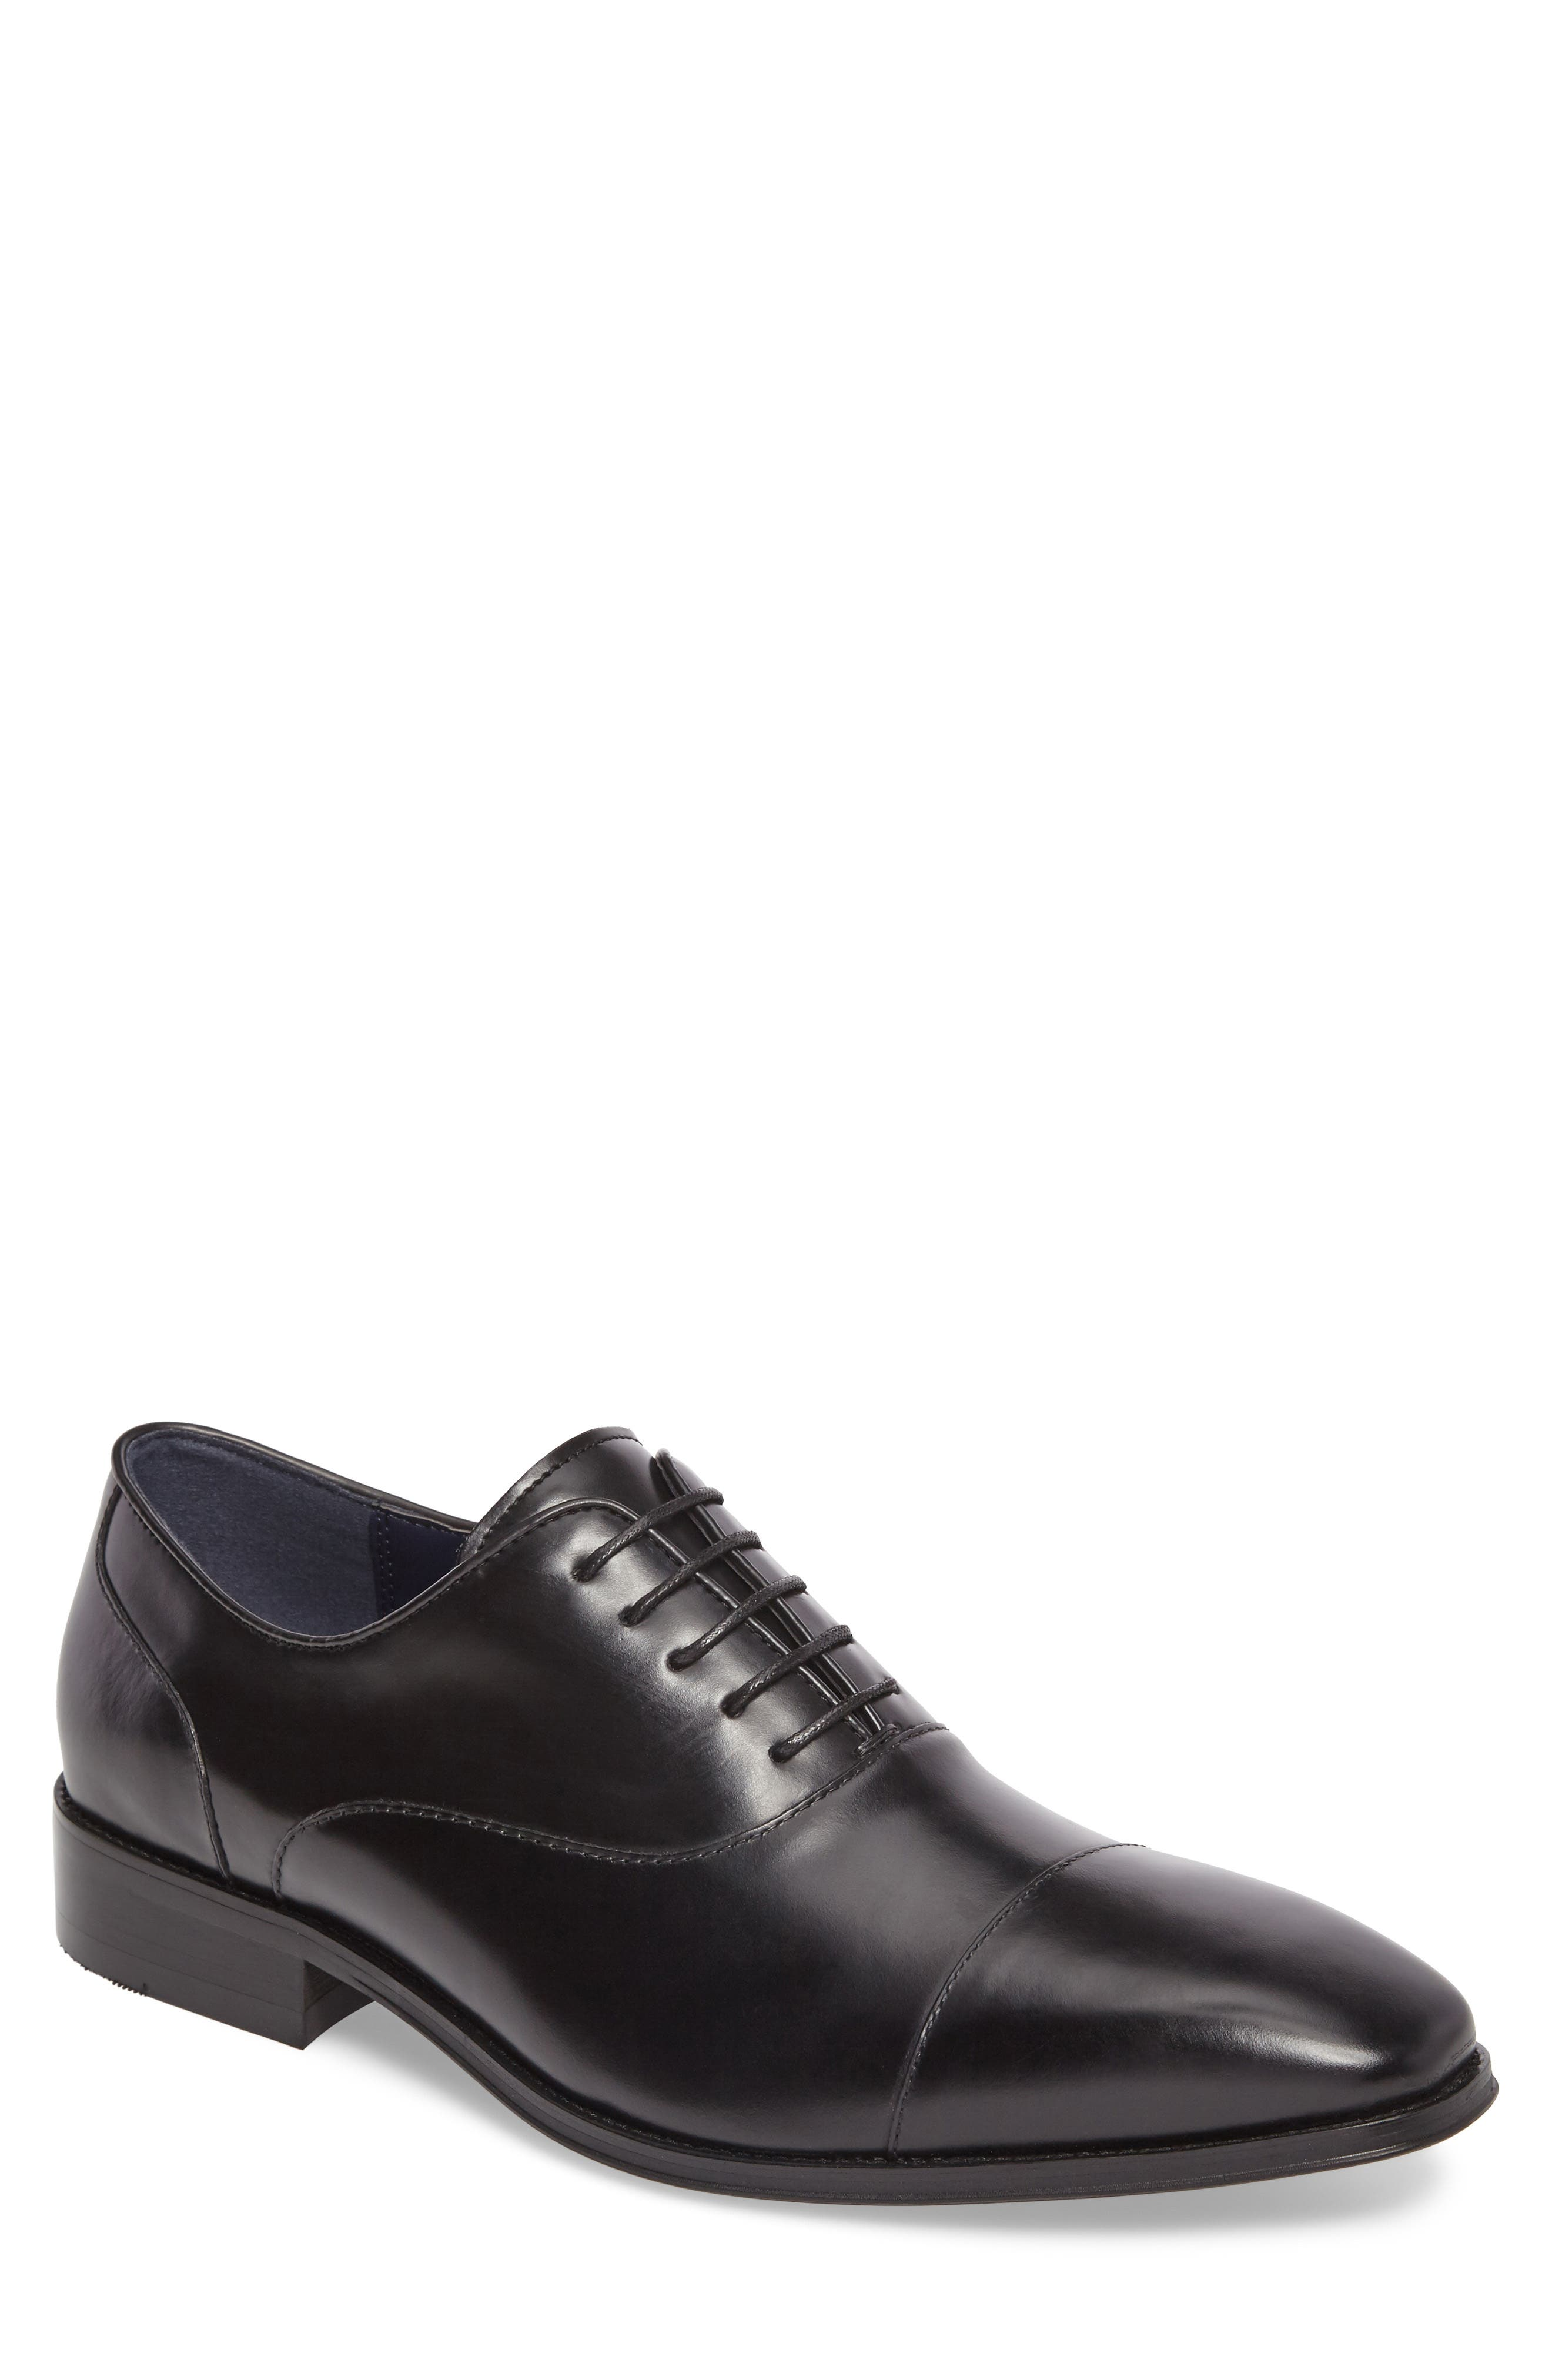 Alternate Image 1 Selected - Kenneth Cole Reaction Cap Toe Oxford (Men)